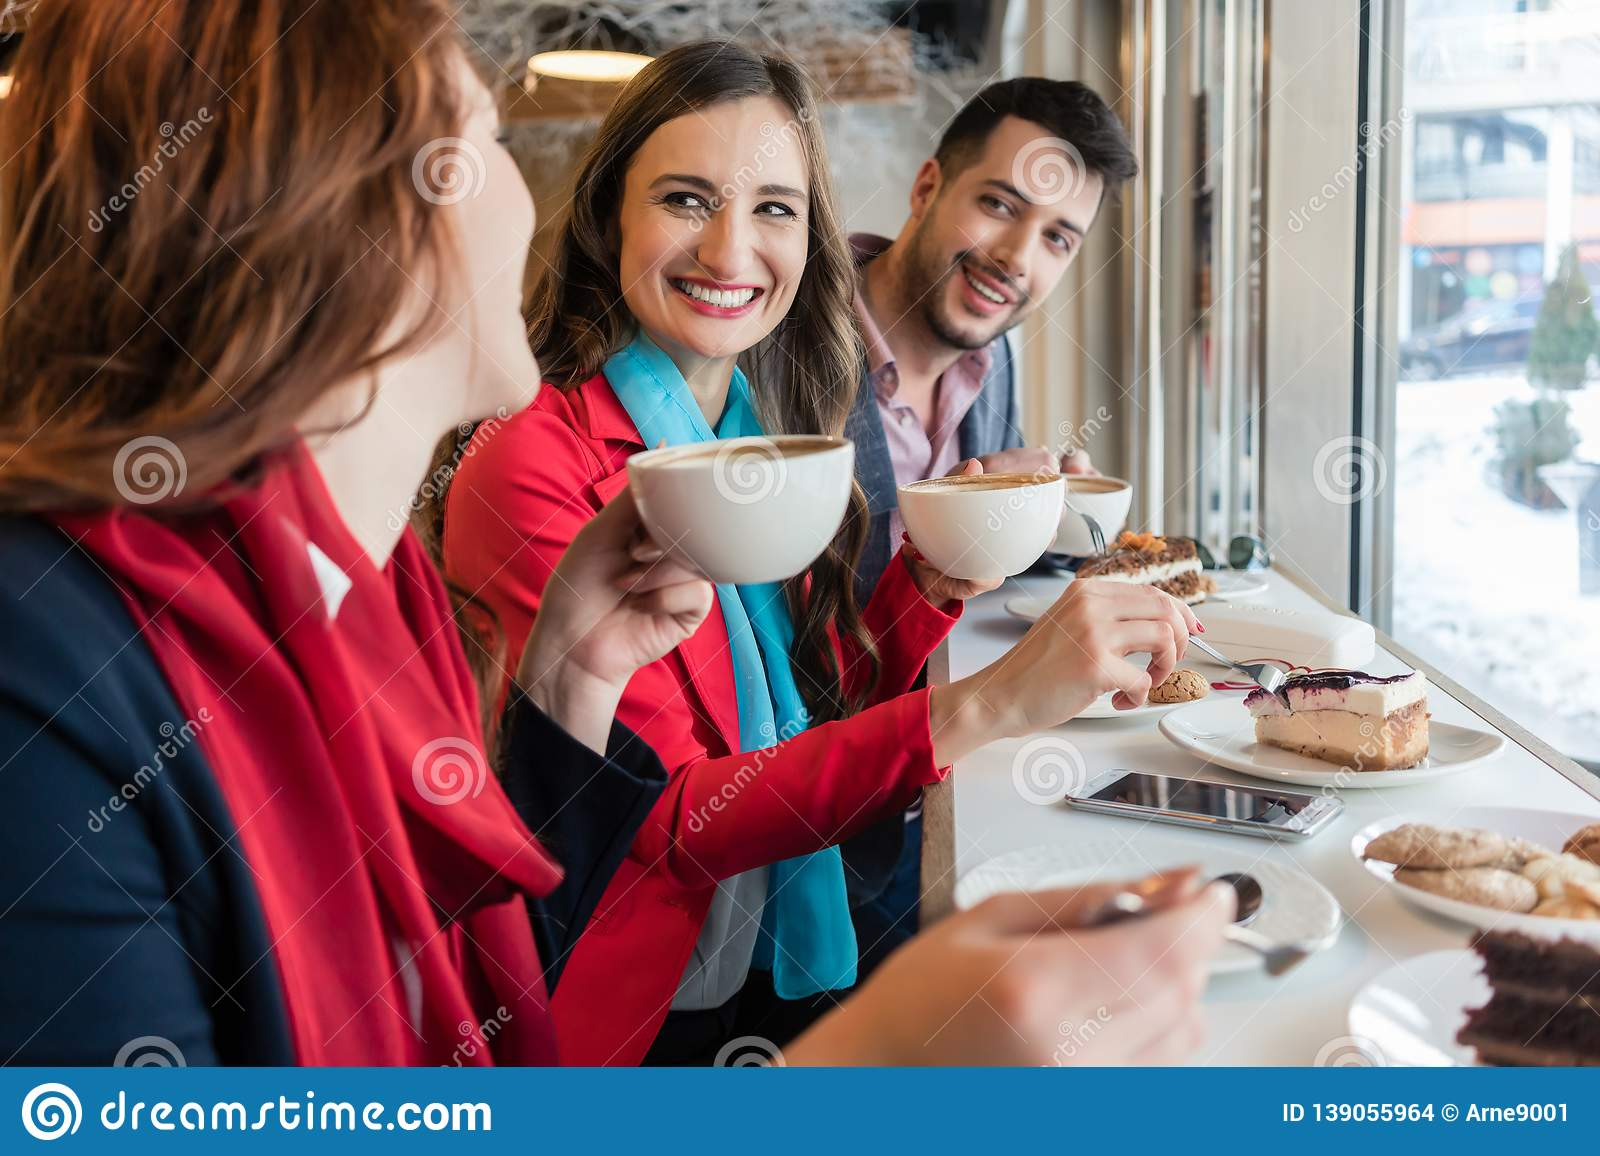 Colleagues smiling while eating delicious cakes during break in a coffee shop